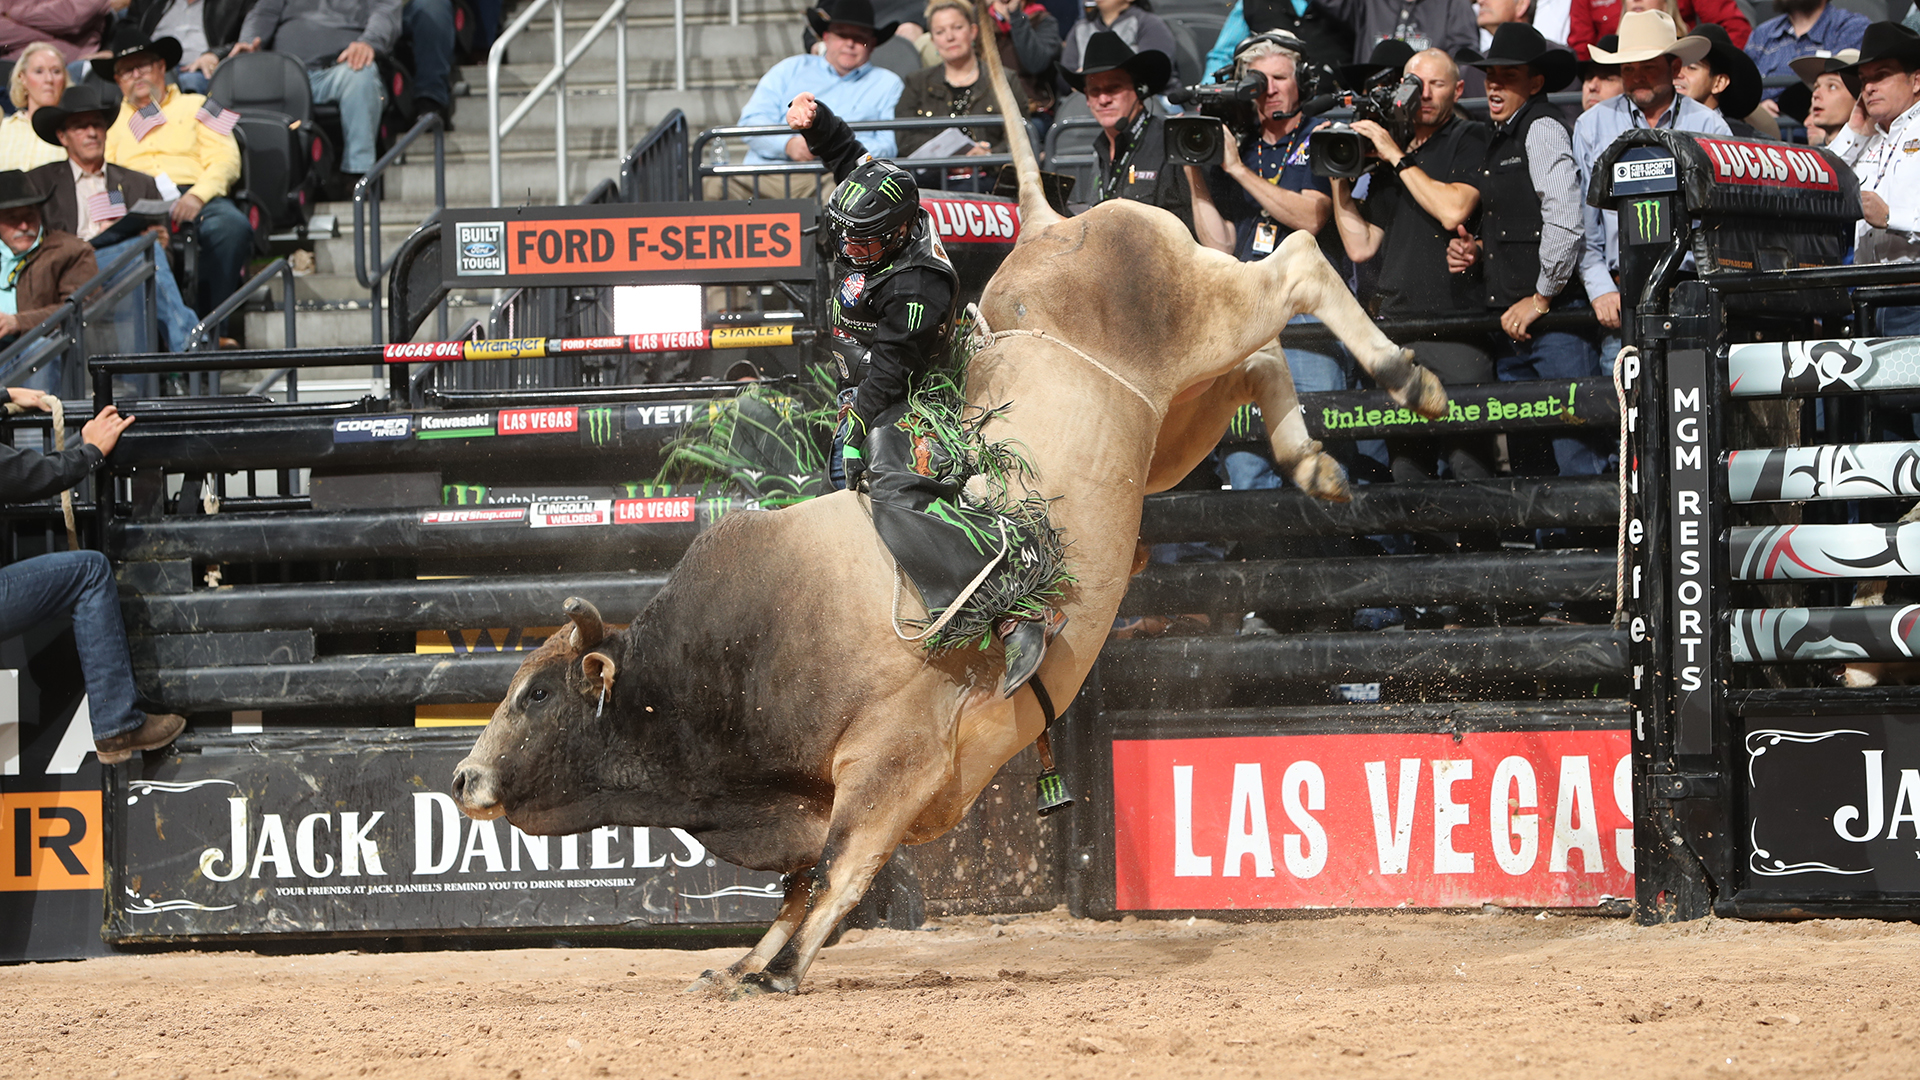 Rider on bull at Professional Bull Riders Championships